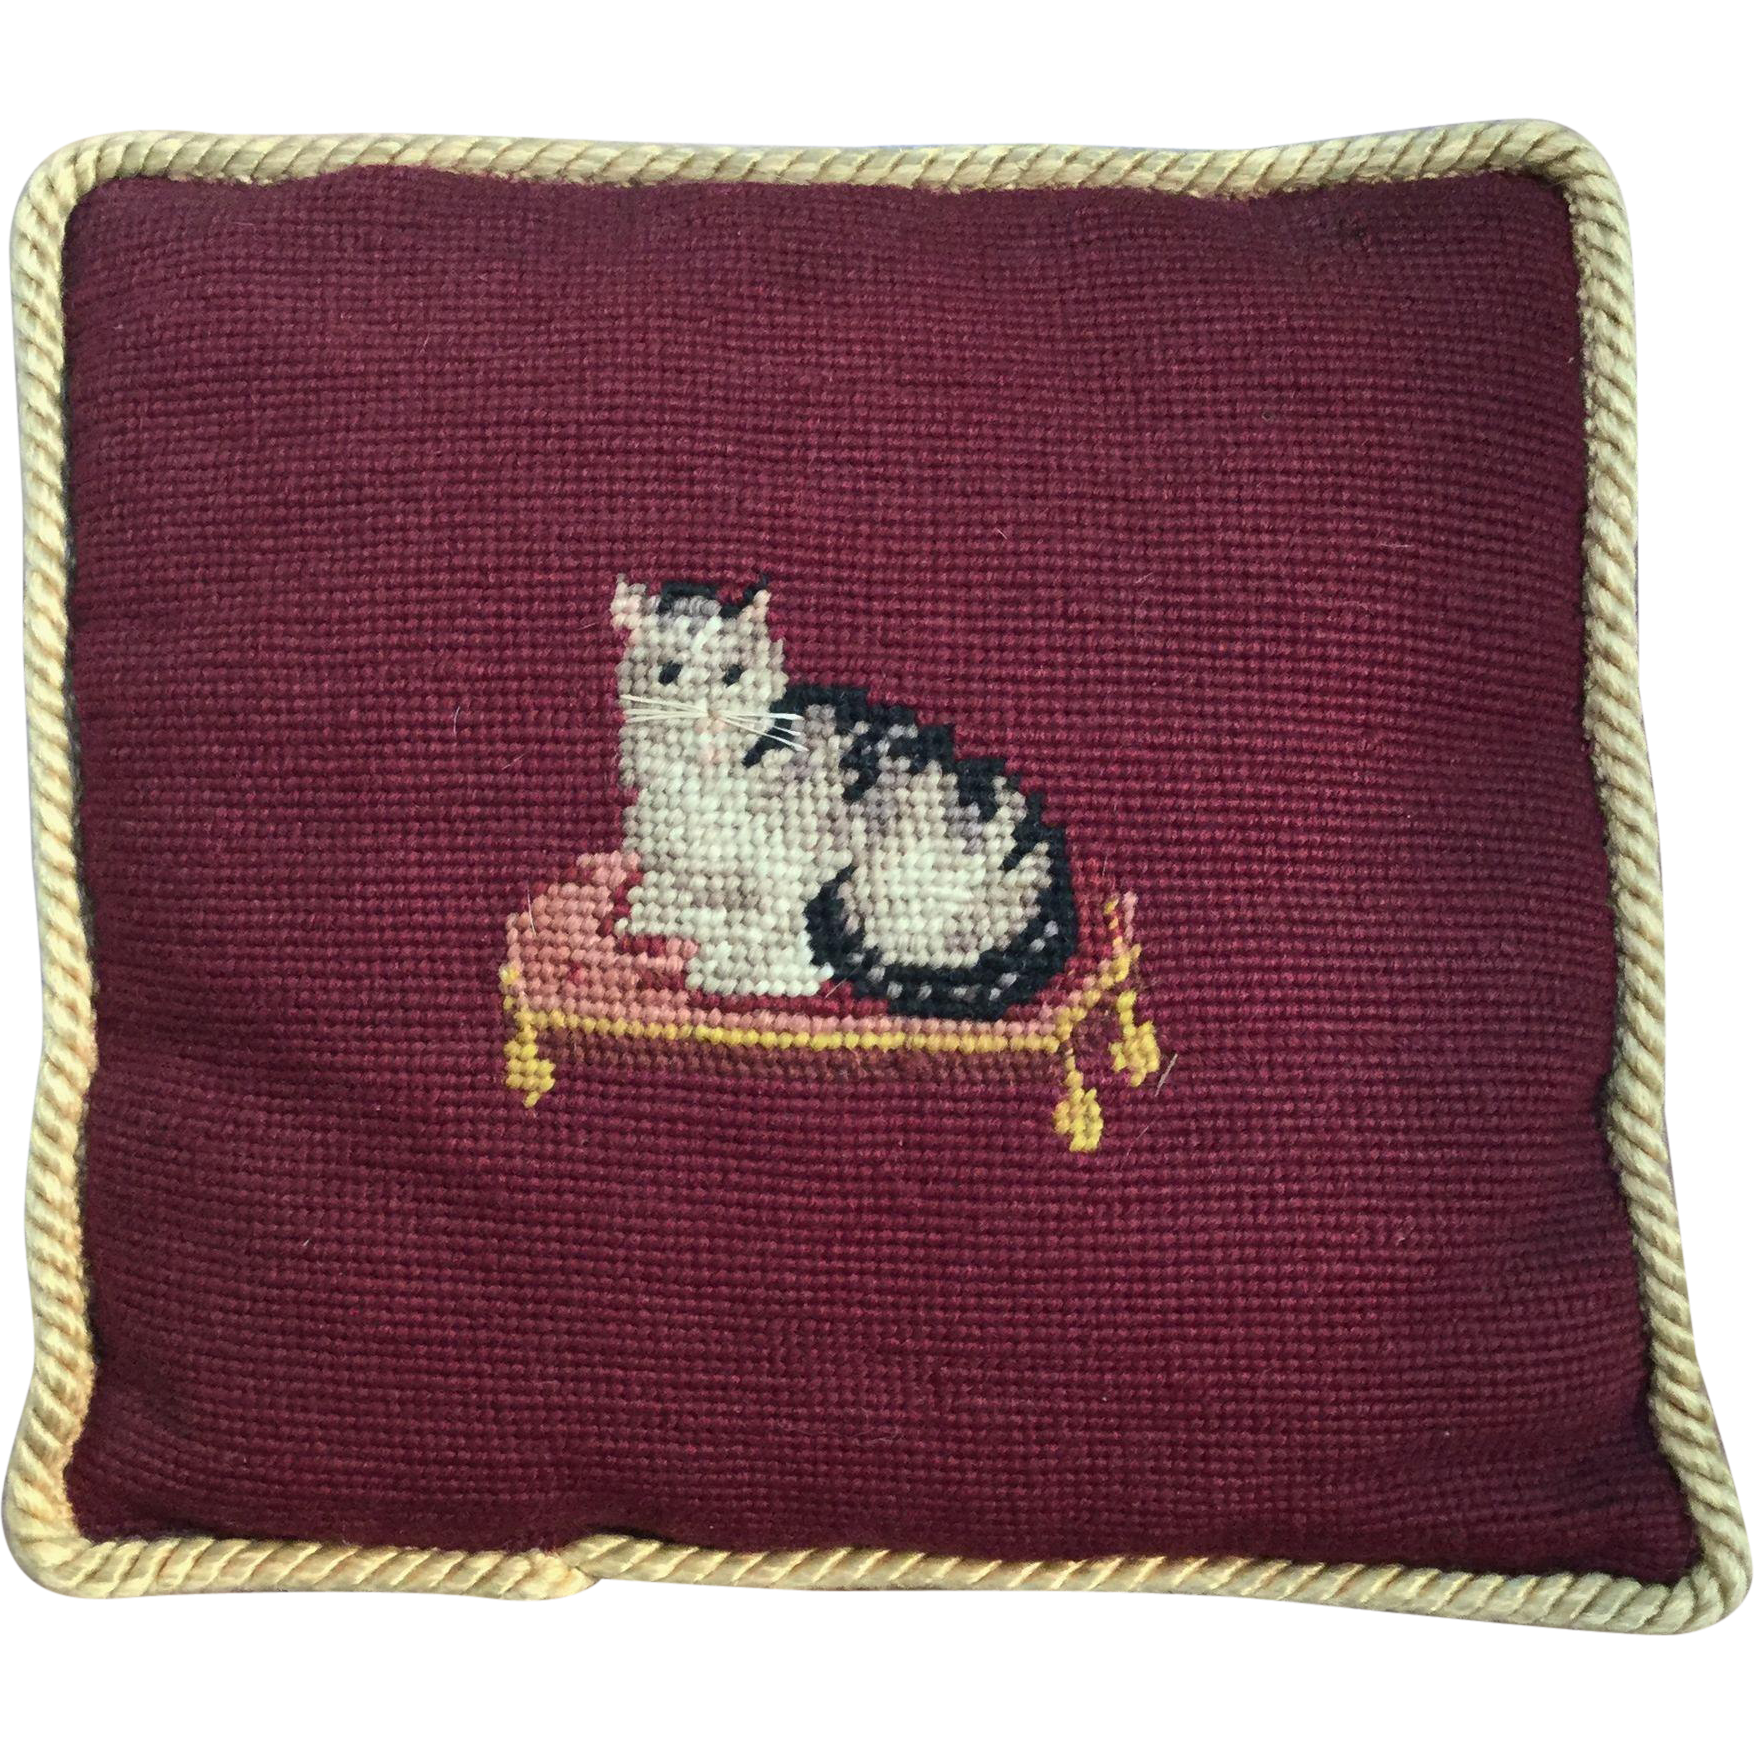 Darling Antique Little SASSY CAT Needlepoint Pillow